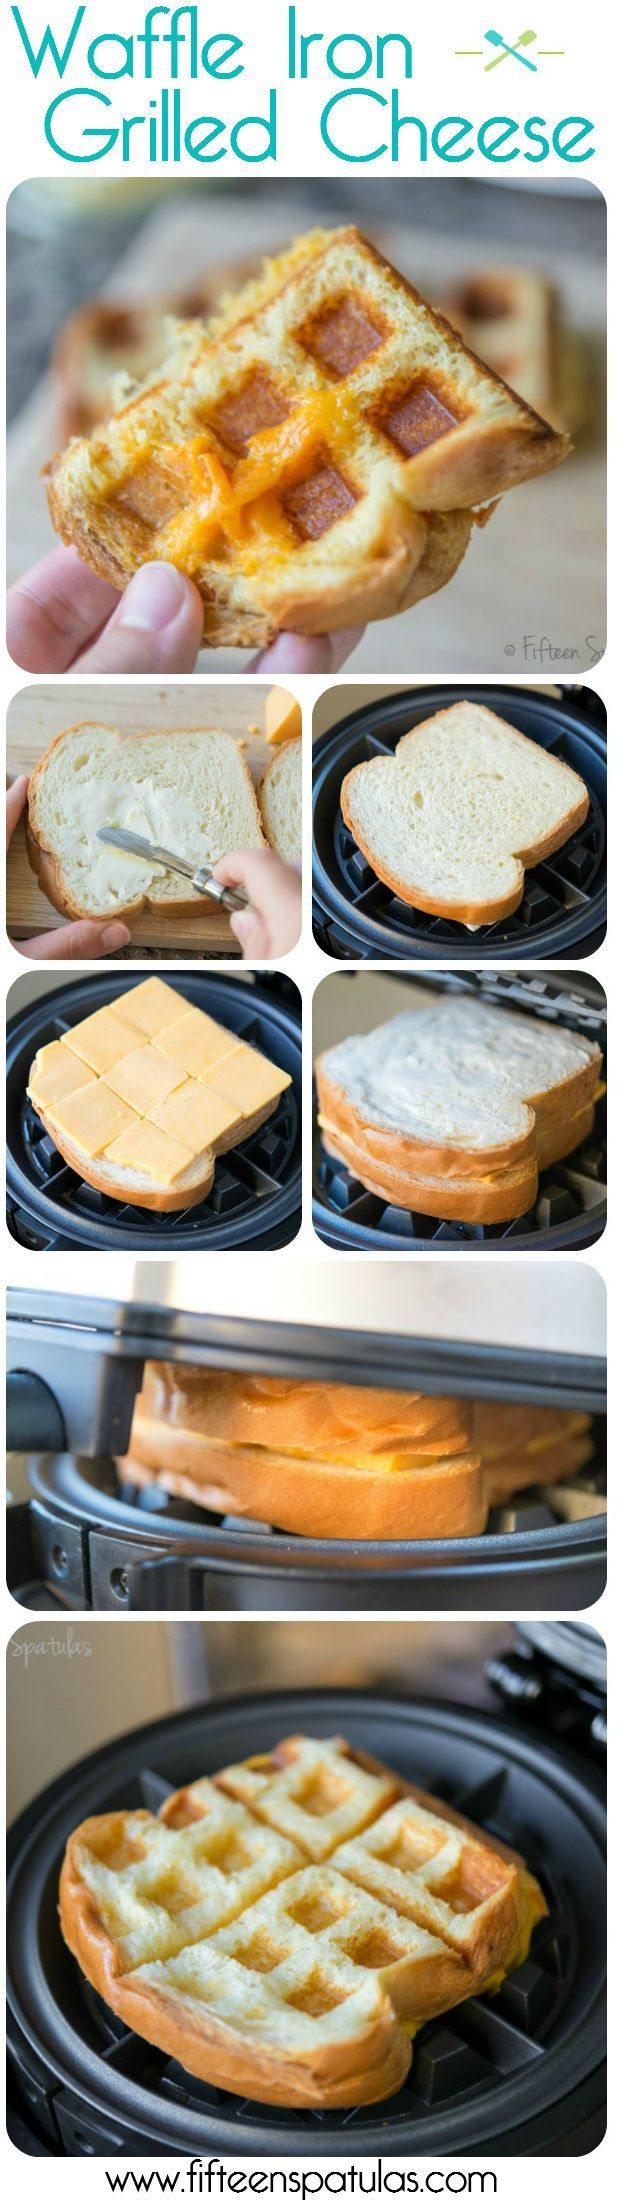 Waffle Iron Grilled Cheese Sandwich.~ we are going to have some fun with our new toy. @Jenna Nelson Nelson Nelson Nelson Nelson Hill Zlotkowski @Rachel Z